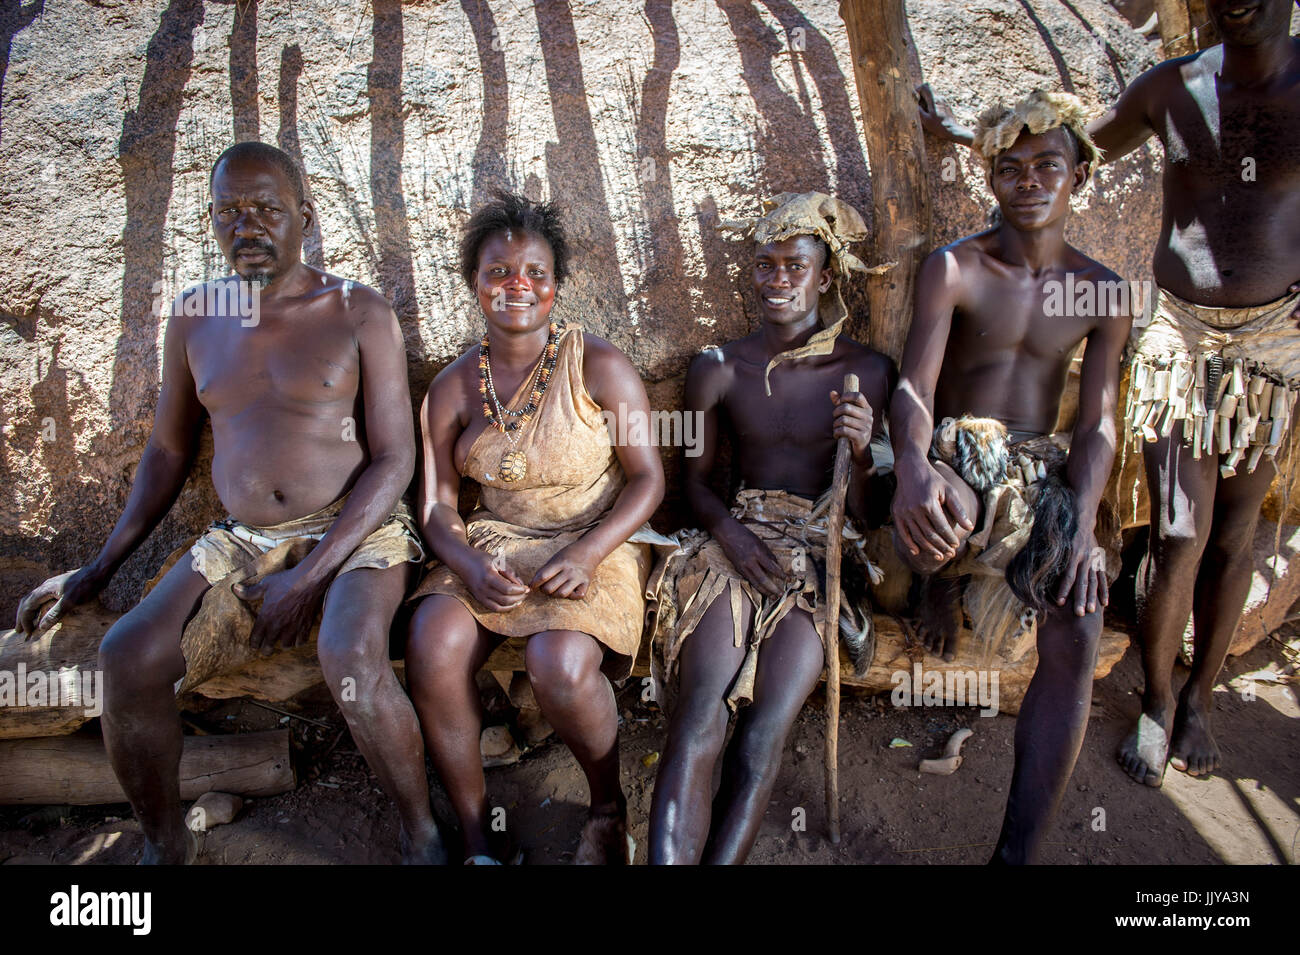 Damara men and women dressed in traditional tribal clothing pose for a photograph at the Damara Living Museum in - Stock Image